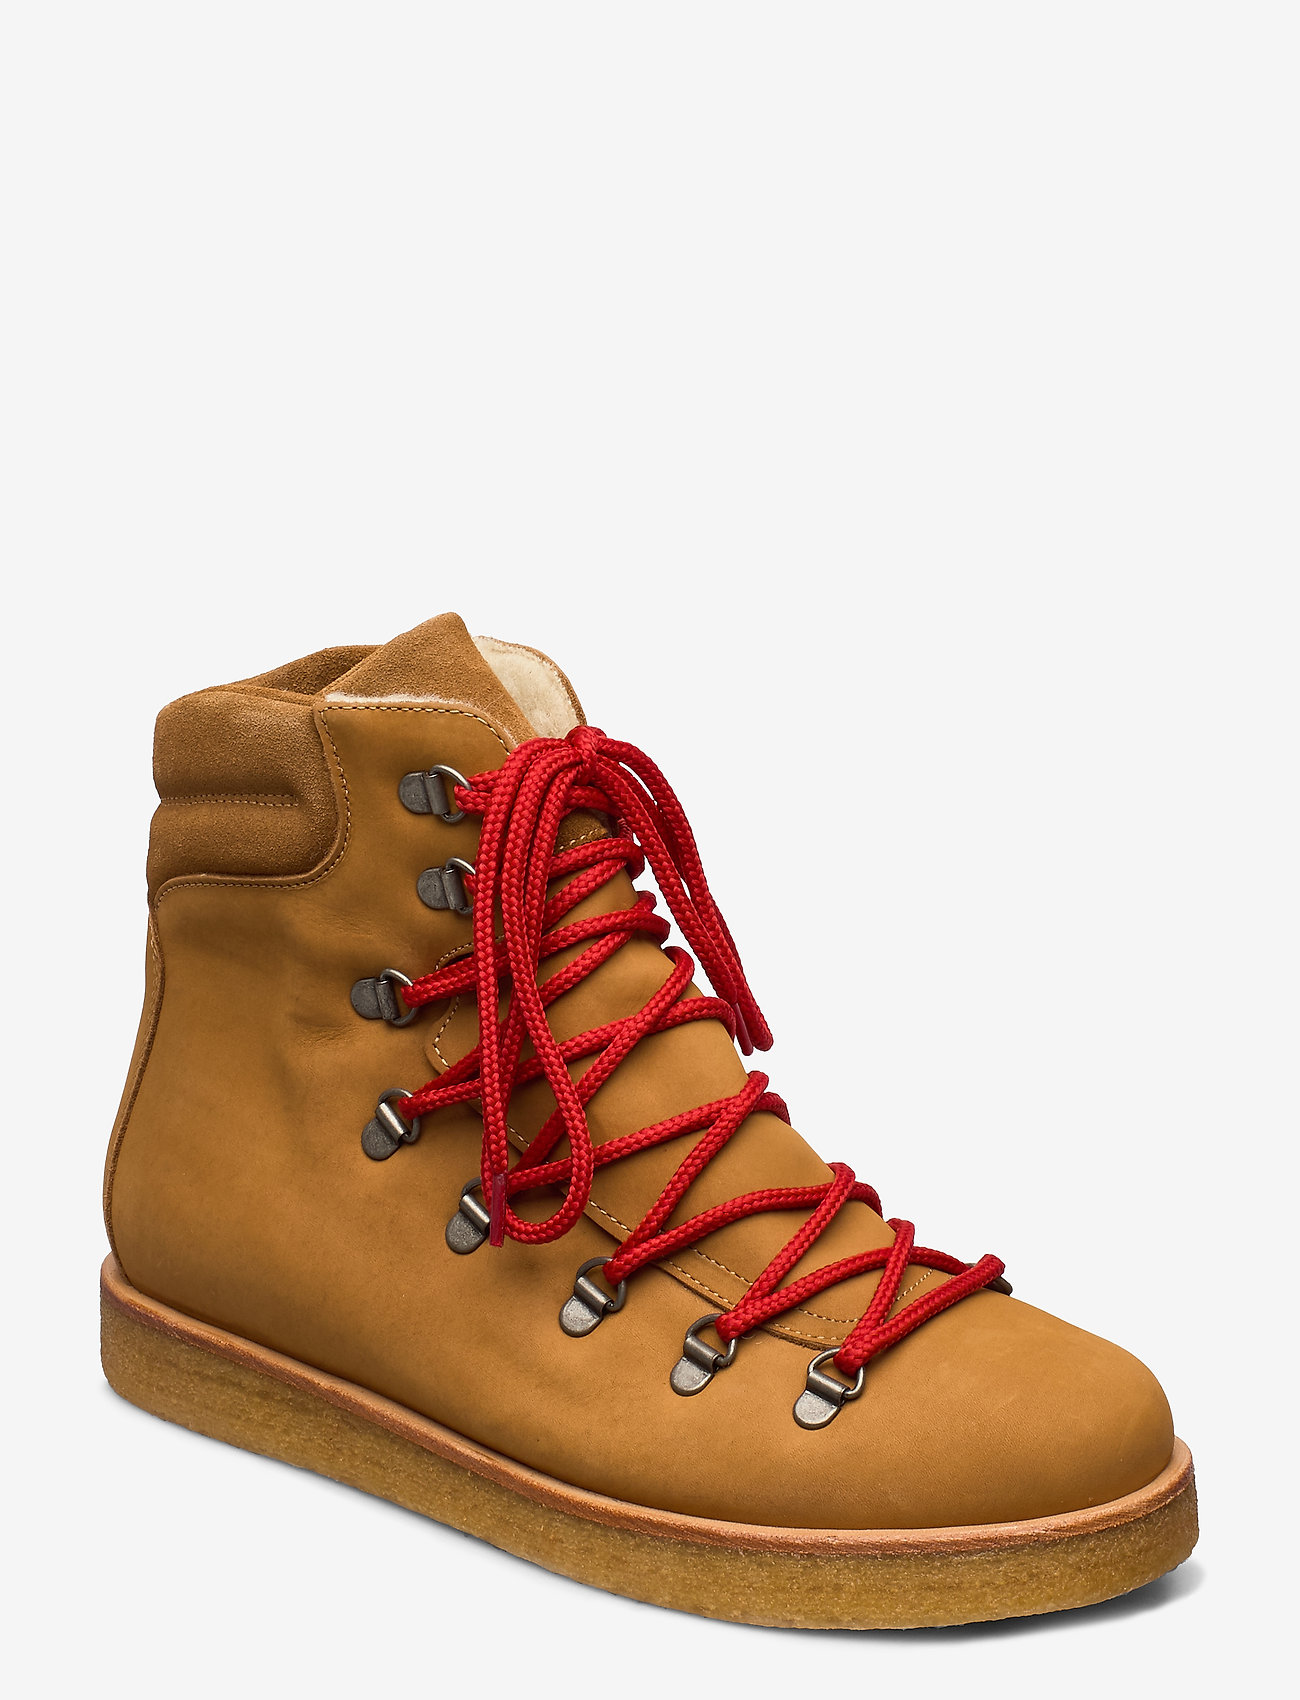 ANGULUS - Boots - flat - with laces - flache stiefeletten - 1262/1168 camel/tan - 0